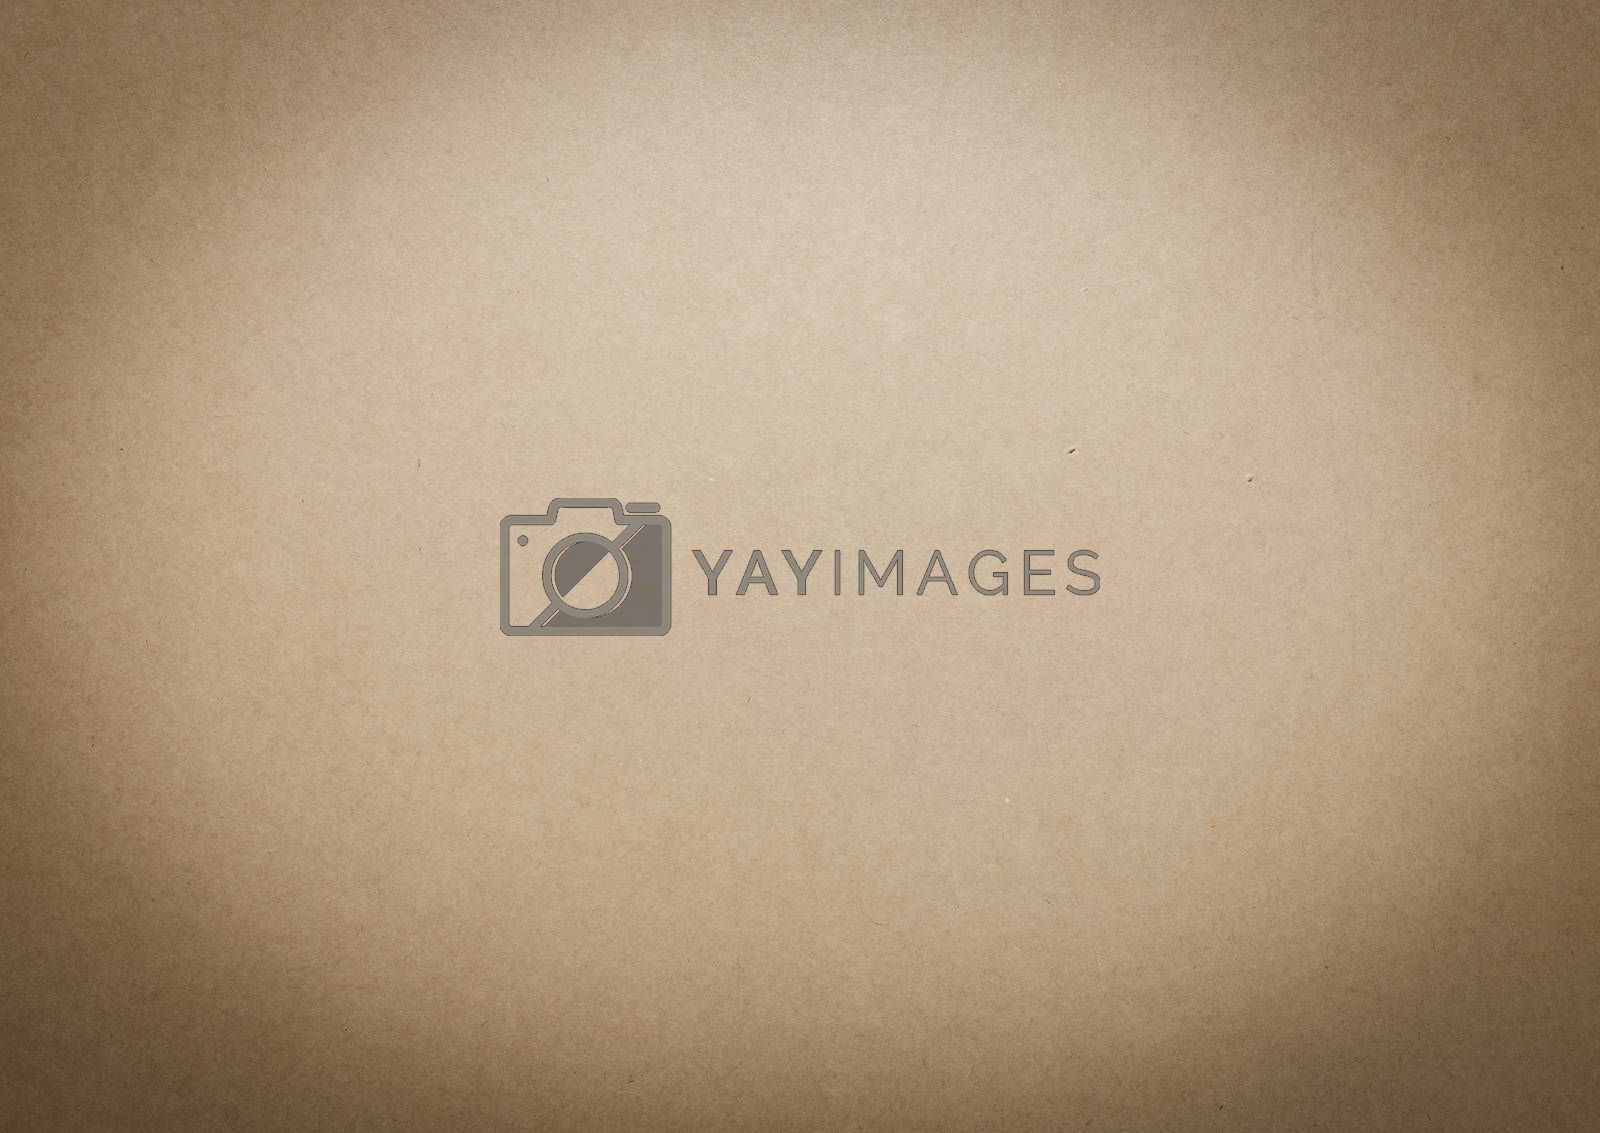 Royalty free image of Old brown paper texture by Sorapop